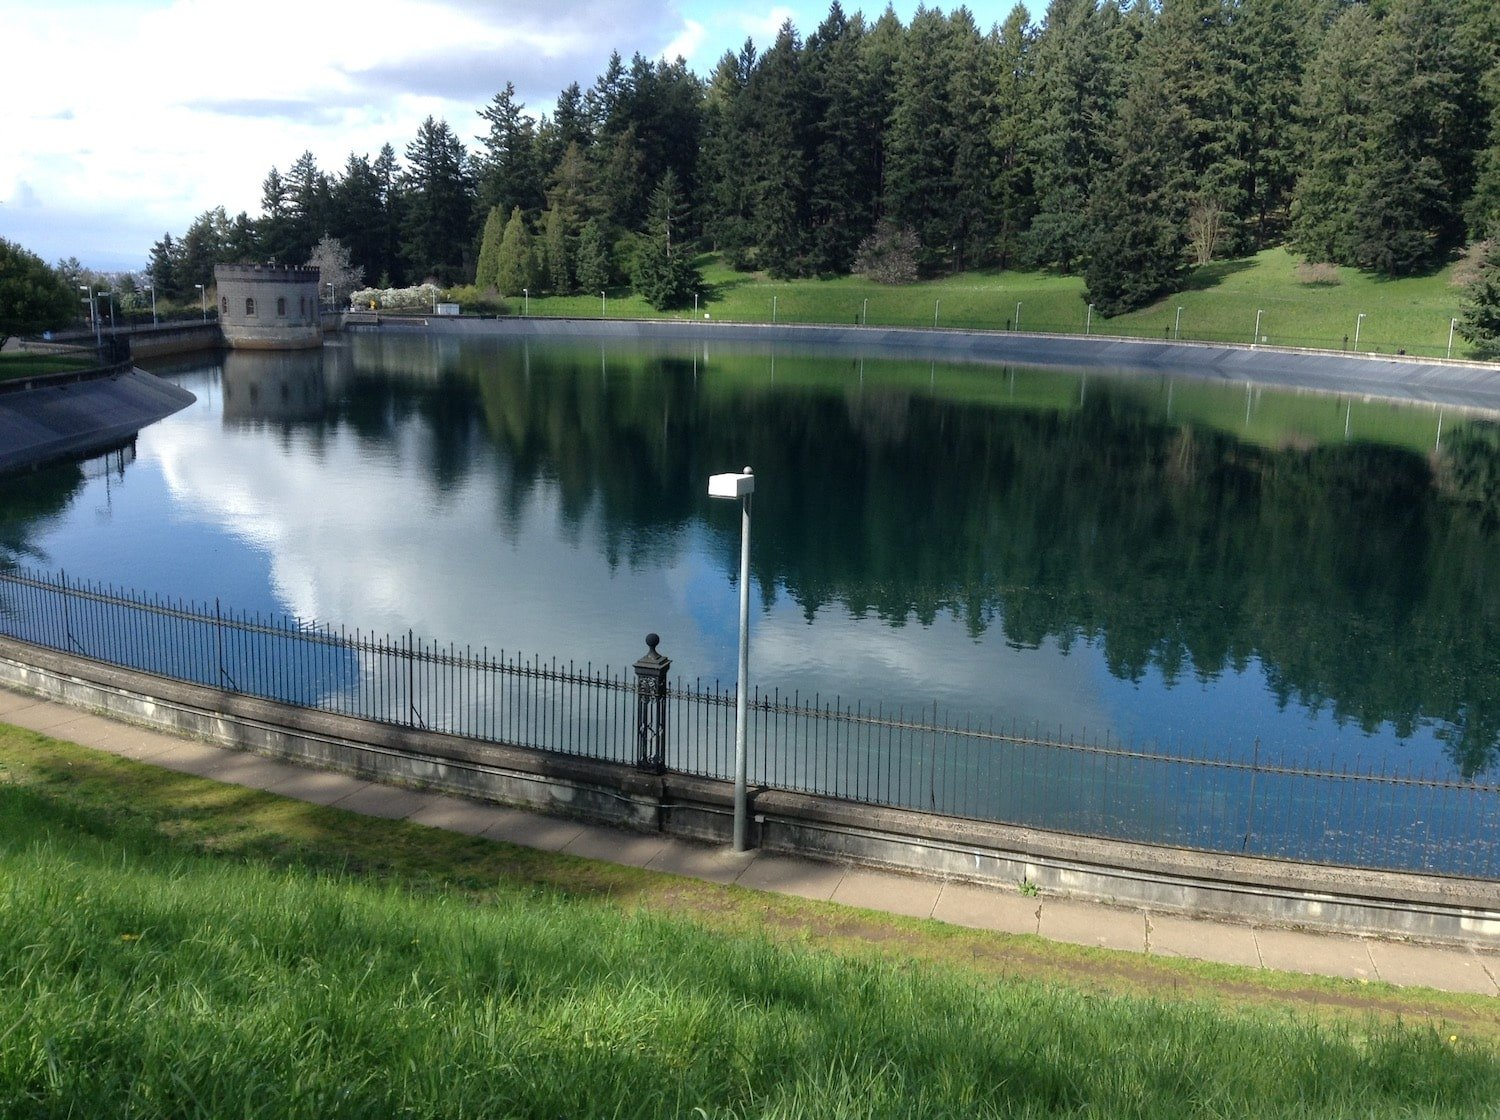 Mt. Tabor Reservoir in Portland